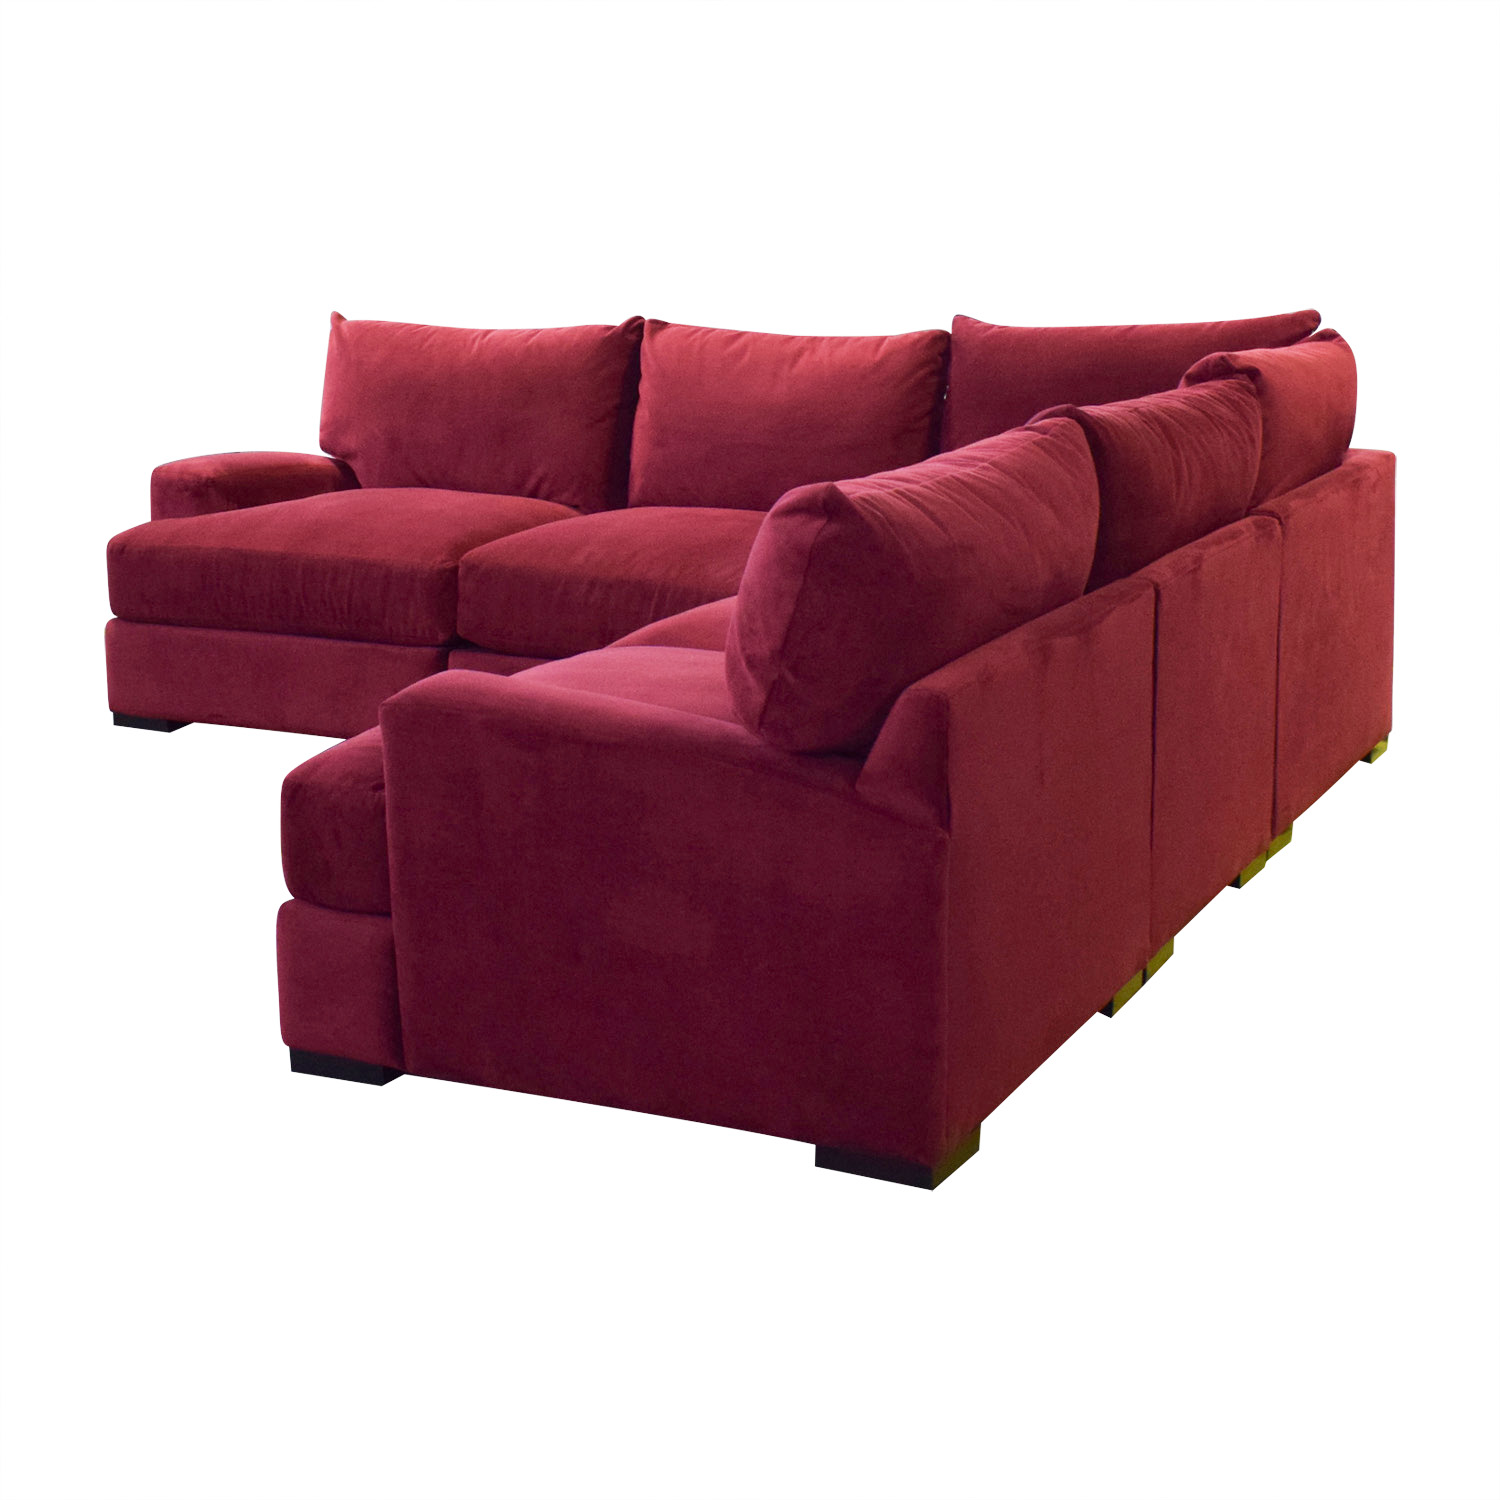 Macy's Macy's Rhyder Sectional on sale